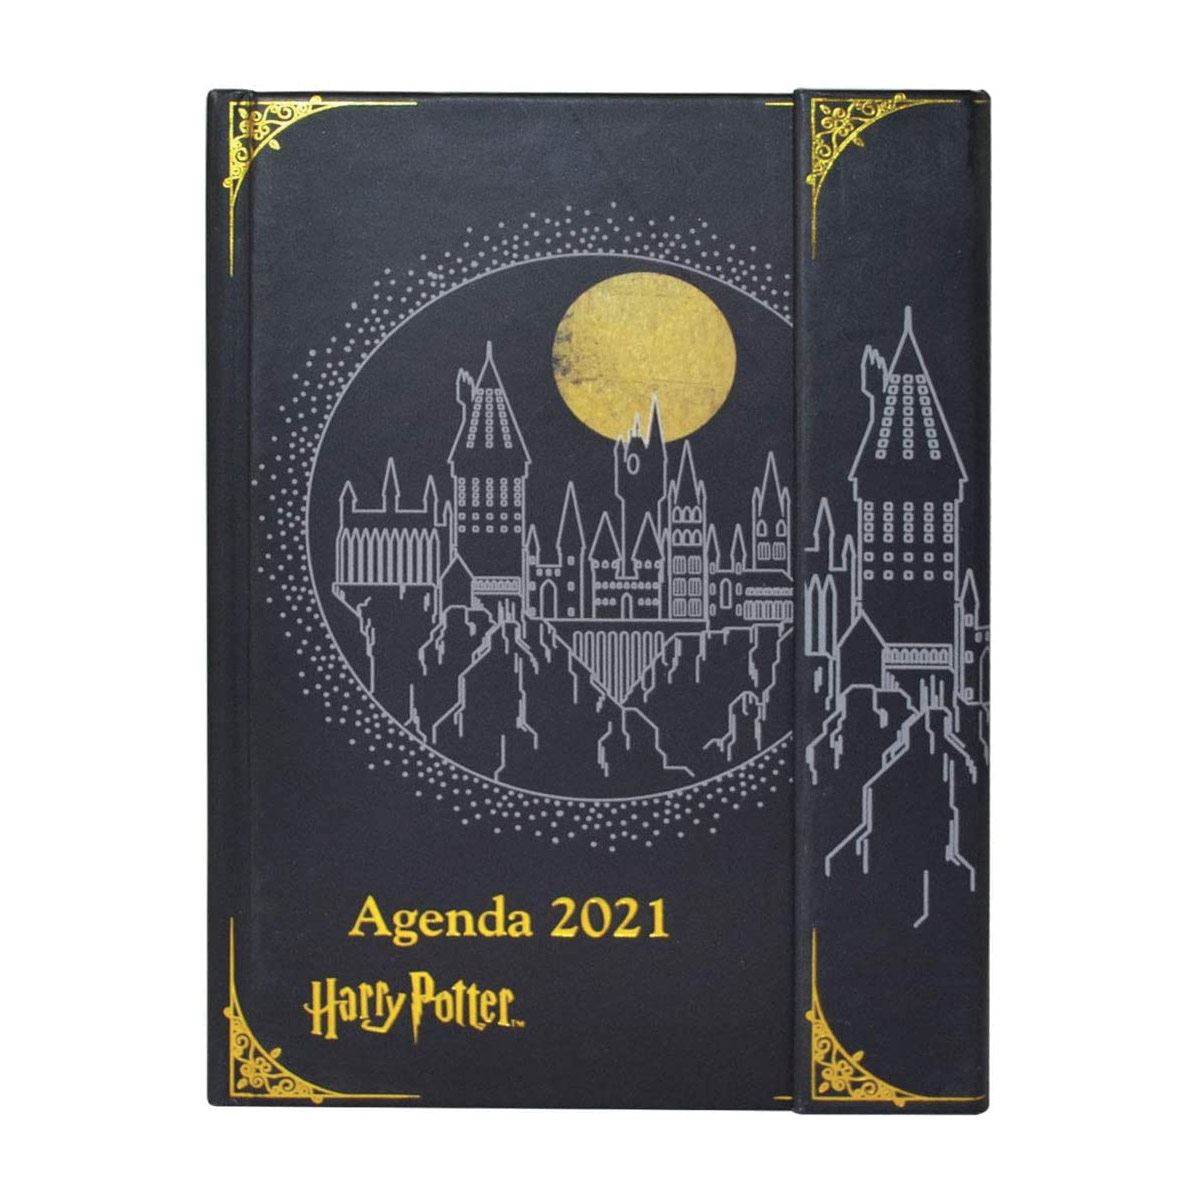 Agenda memorandum Harry Potter